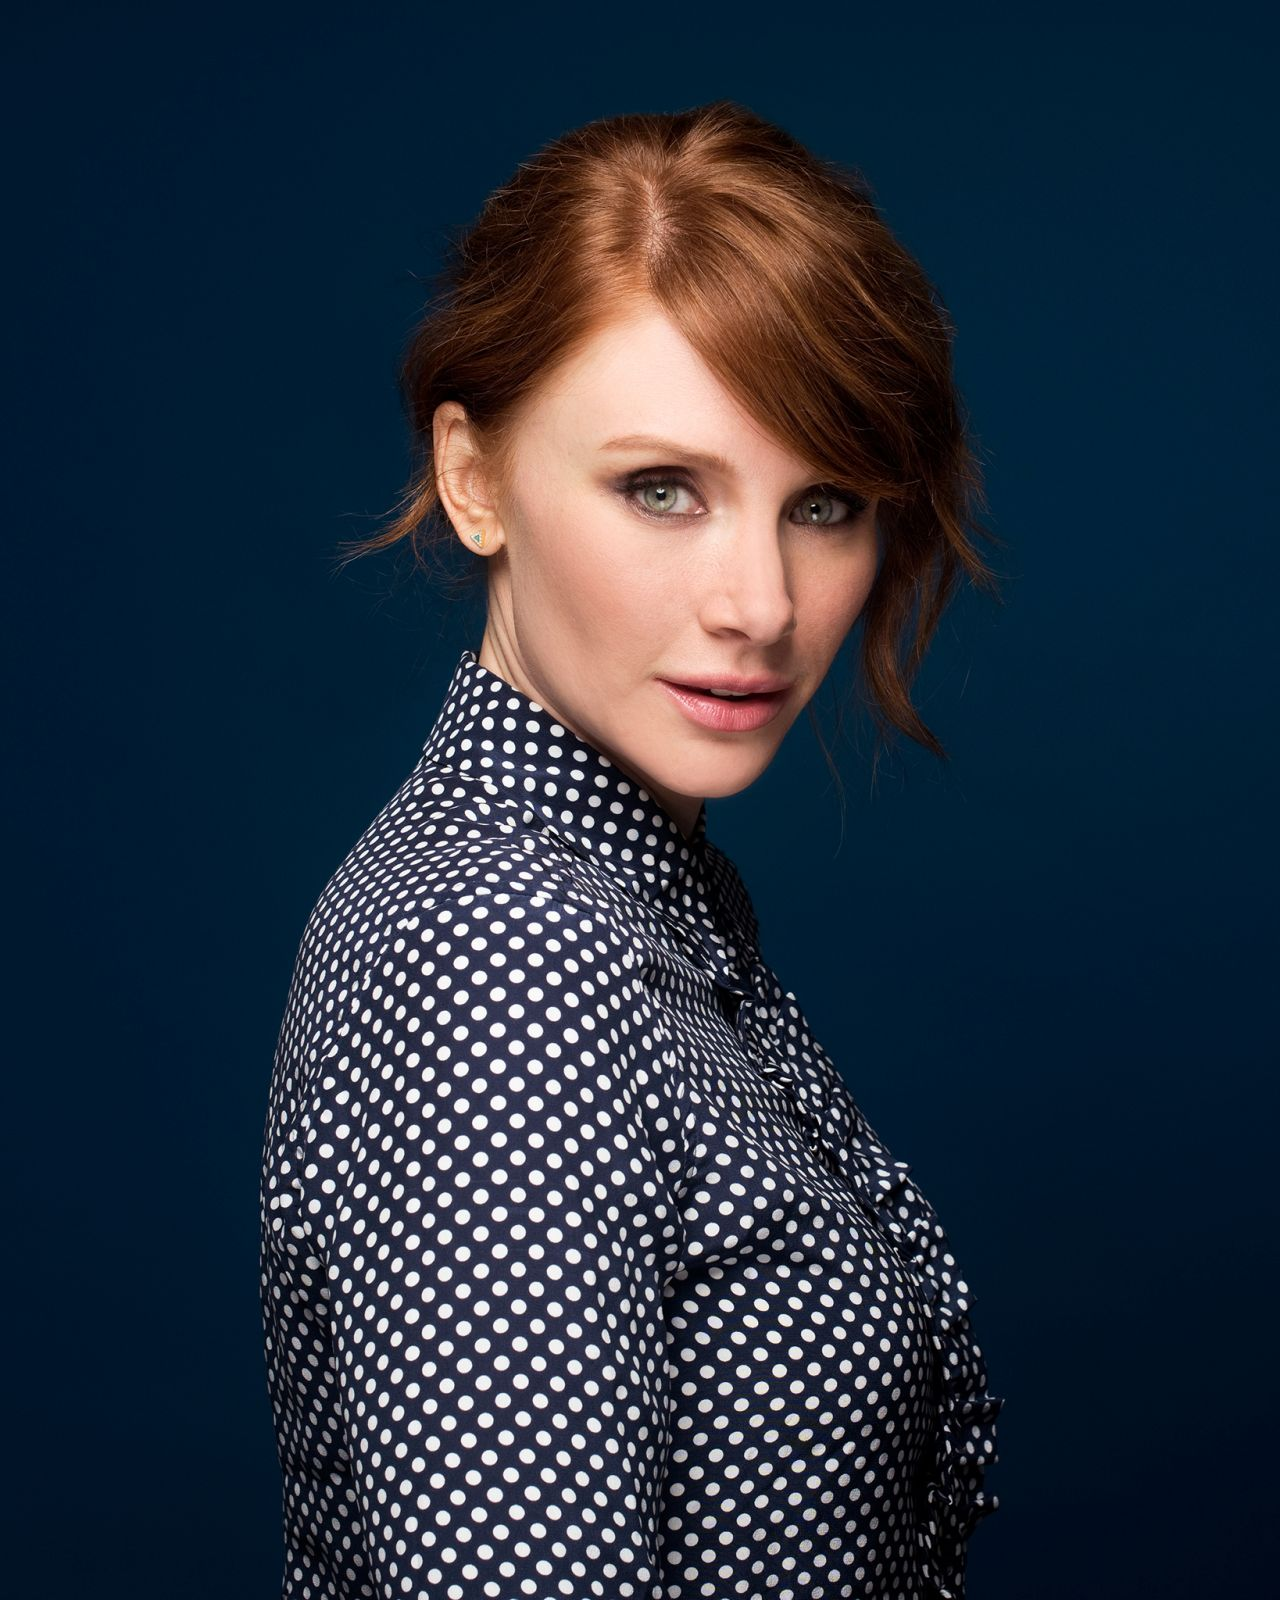 bryce dallas howard kinopoisk